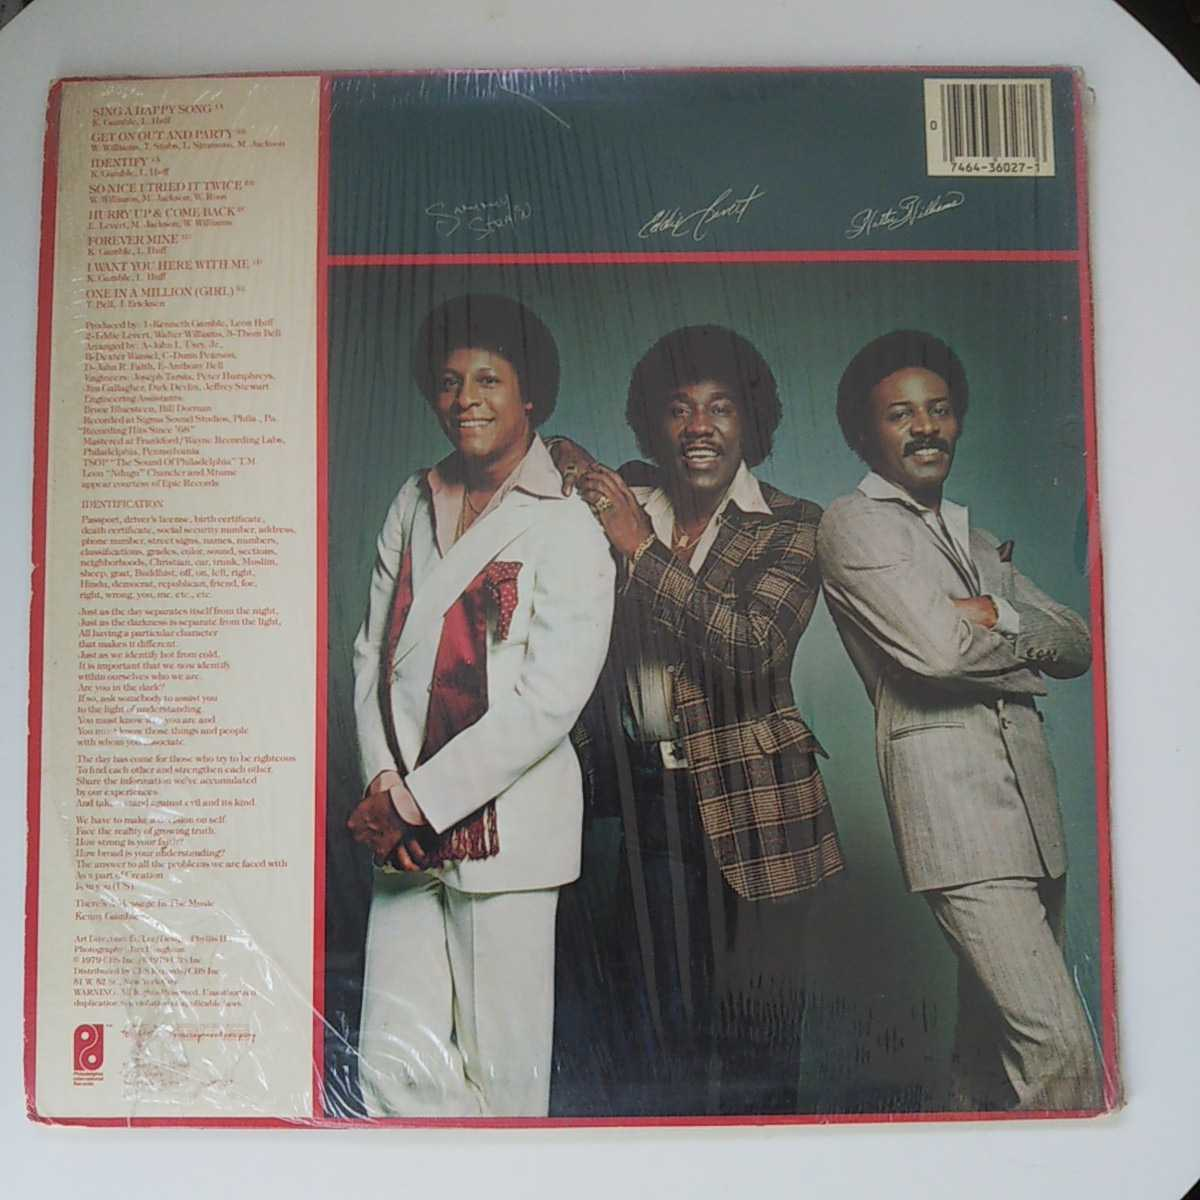 THE O'JAYS / IDENTIFY YOURSELF /LP/SING A HAPPY SONG/GAMBLE & HUFF/DISCO/フィリー/フリーソウル _画像2